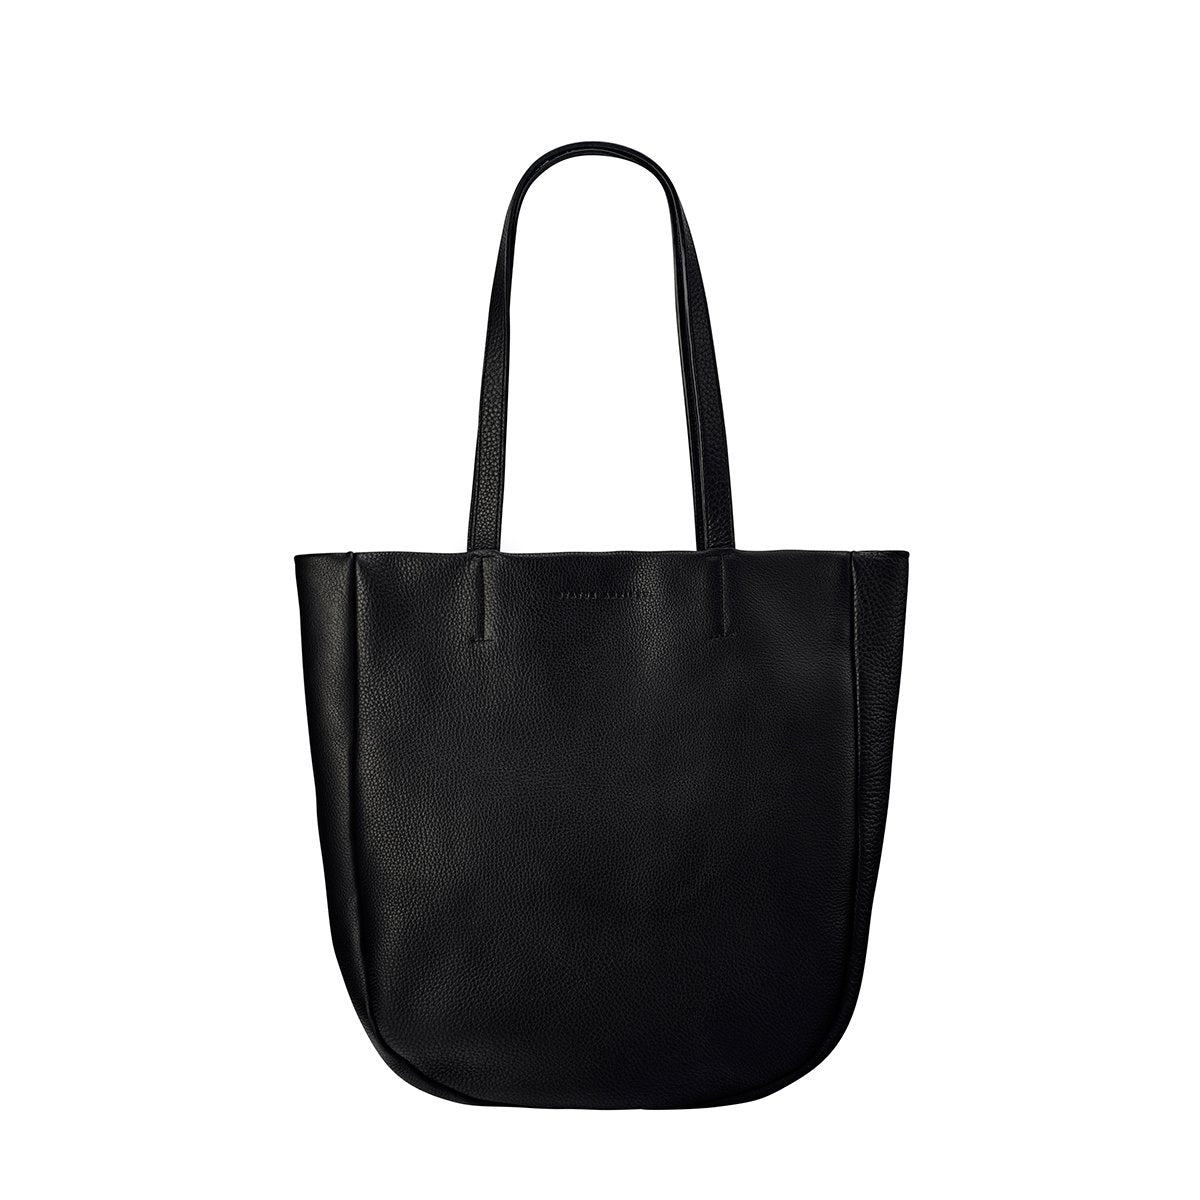 Appointed Bag Black